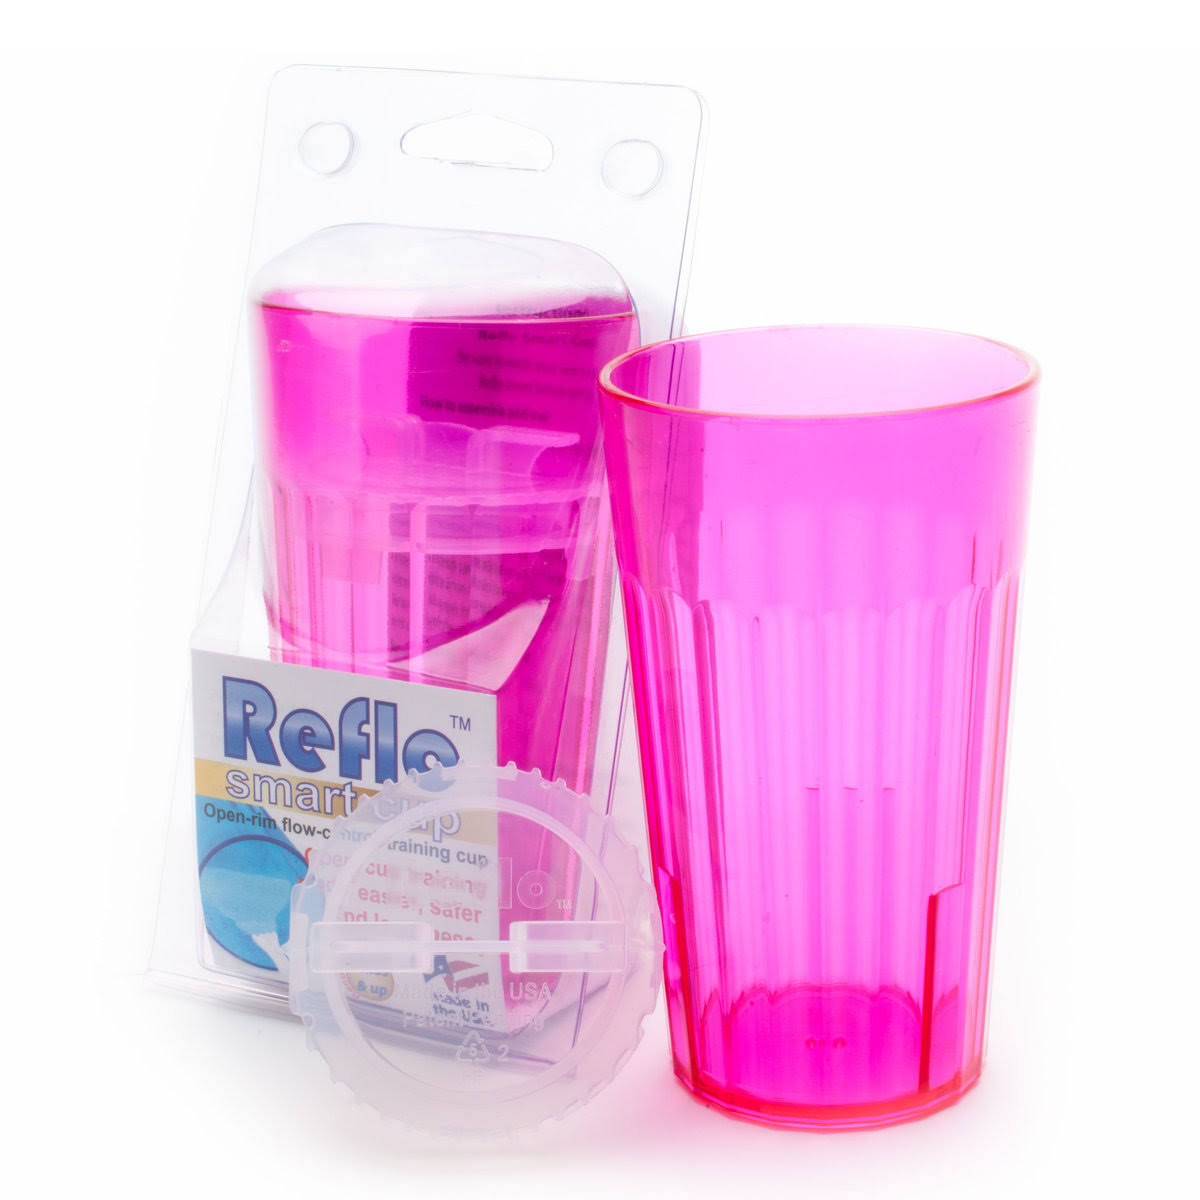 Reflo Smart Training Cup - Red/Violet